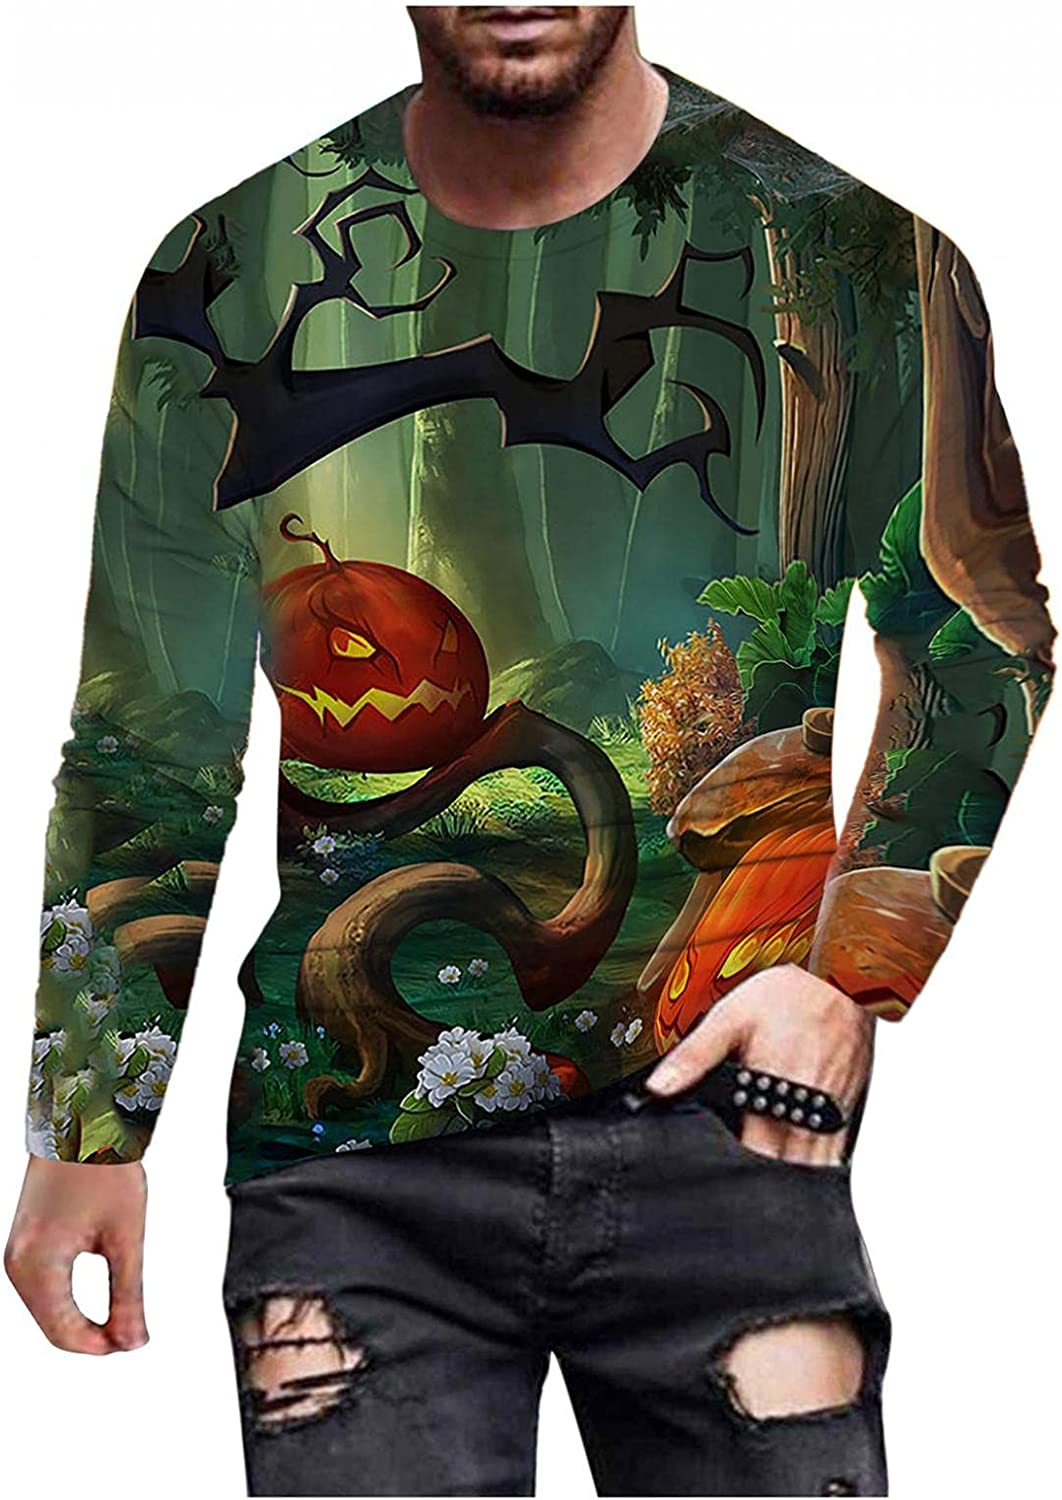 Mens Halloween T Shirt Long Sleeve Crew Neck Printed Top Novelty Funny Graphic Tee Blouse Casual Loose Pullover Shirts